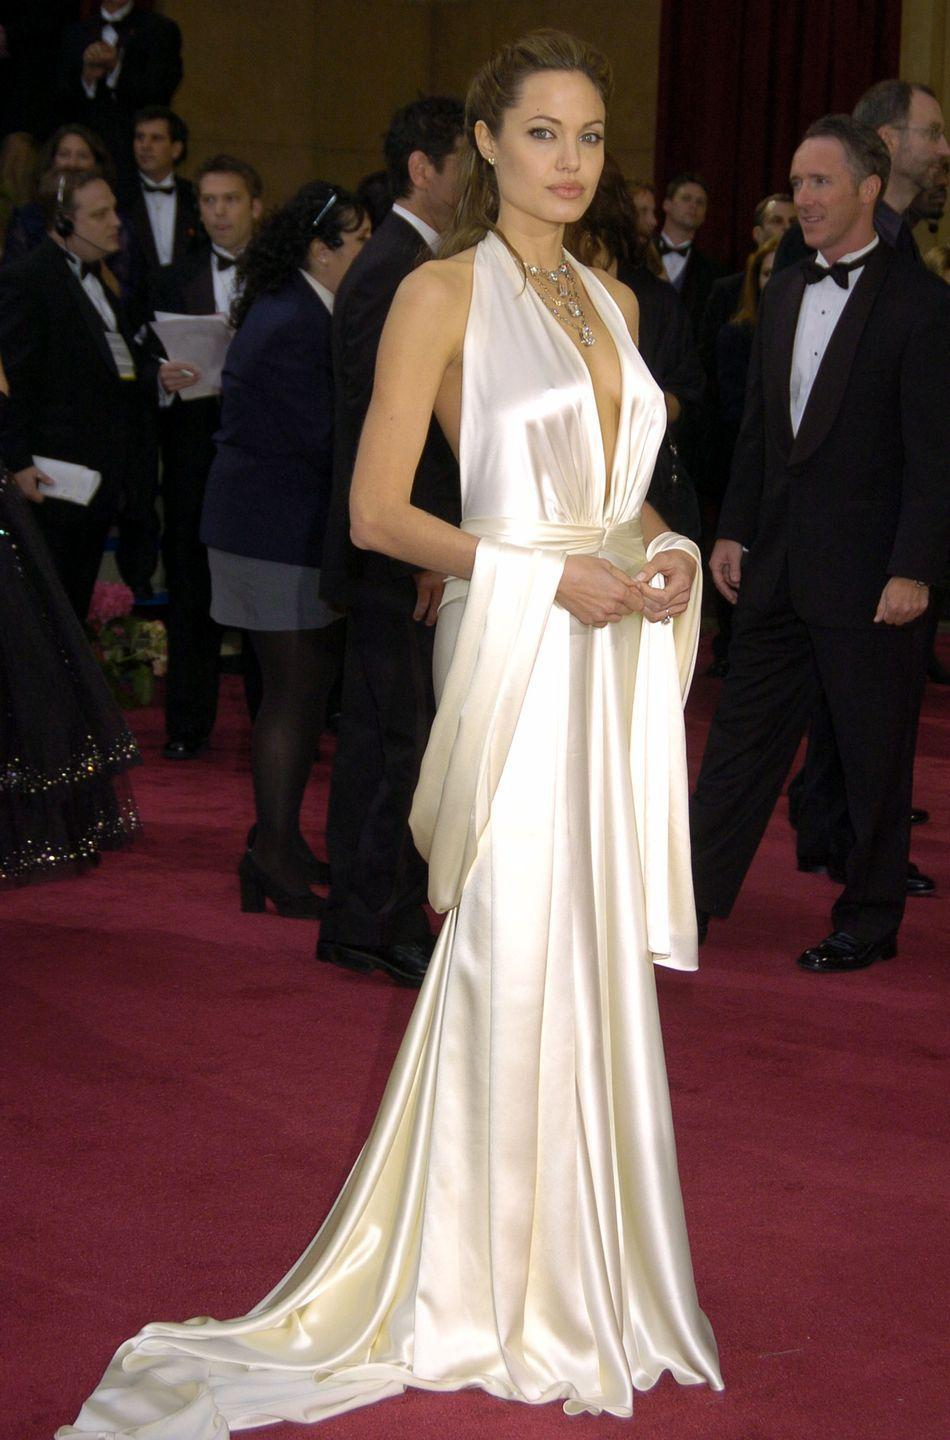 <p>Angie stunned in this silky cream-colored halter dress, and let's be real: Only she could make a coordinating shawl THIS glam. She definitely channeled old Hollywood style in this classic look. </p>